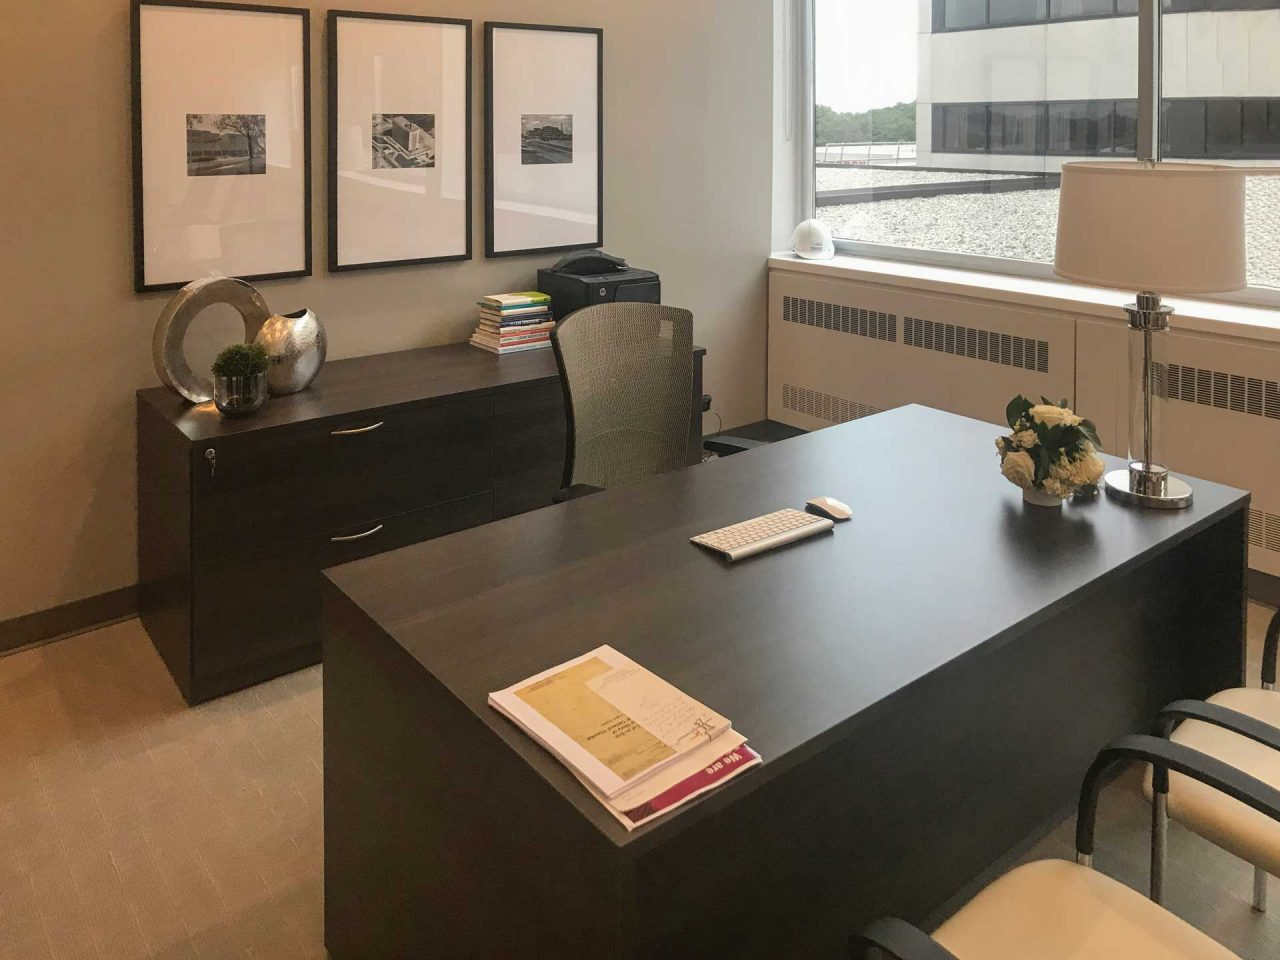 Laminate Desk with Mixed Storage and separated cabinet, office chair